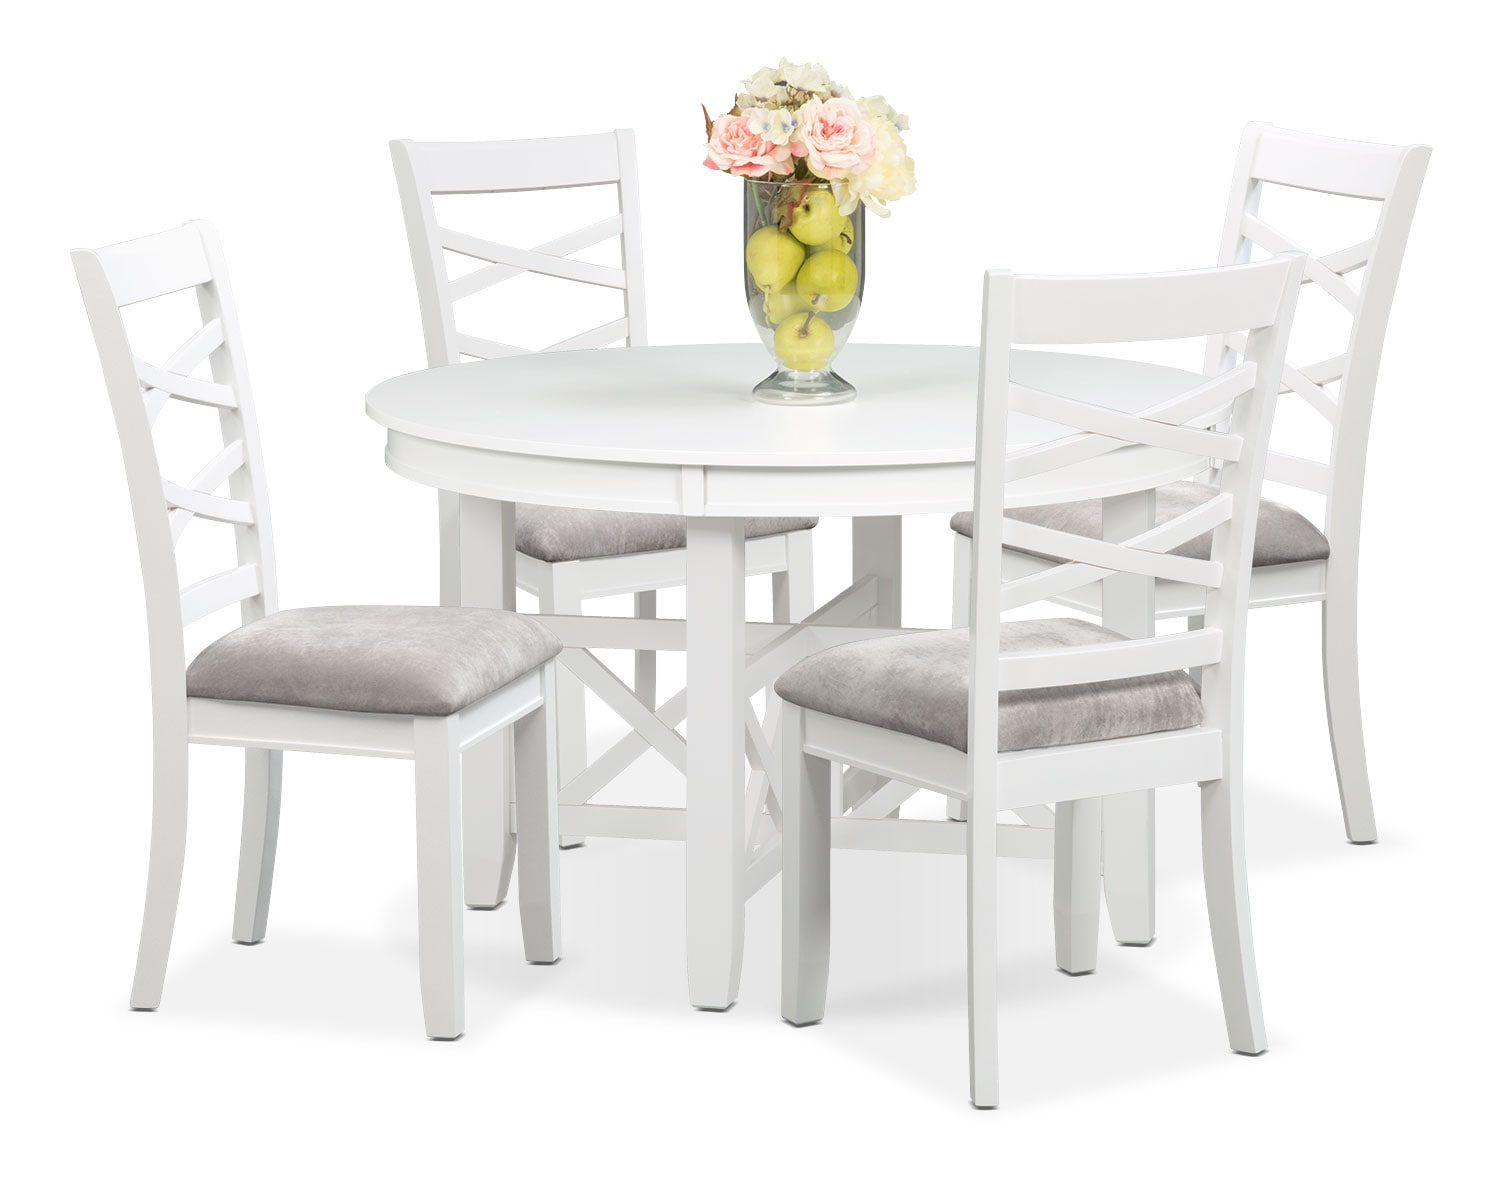 The Americana White Dinette Collection